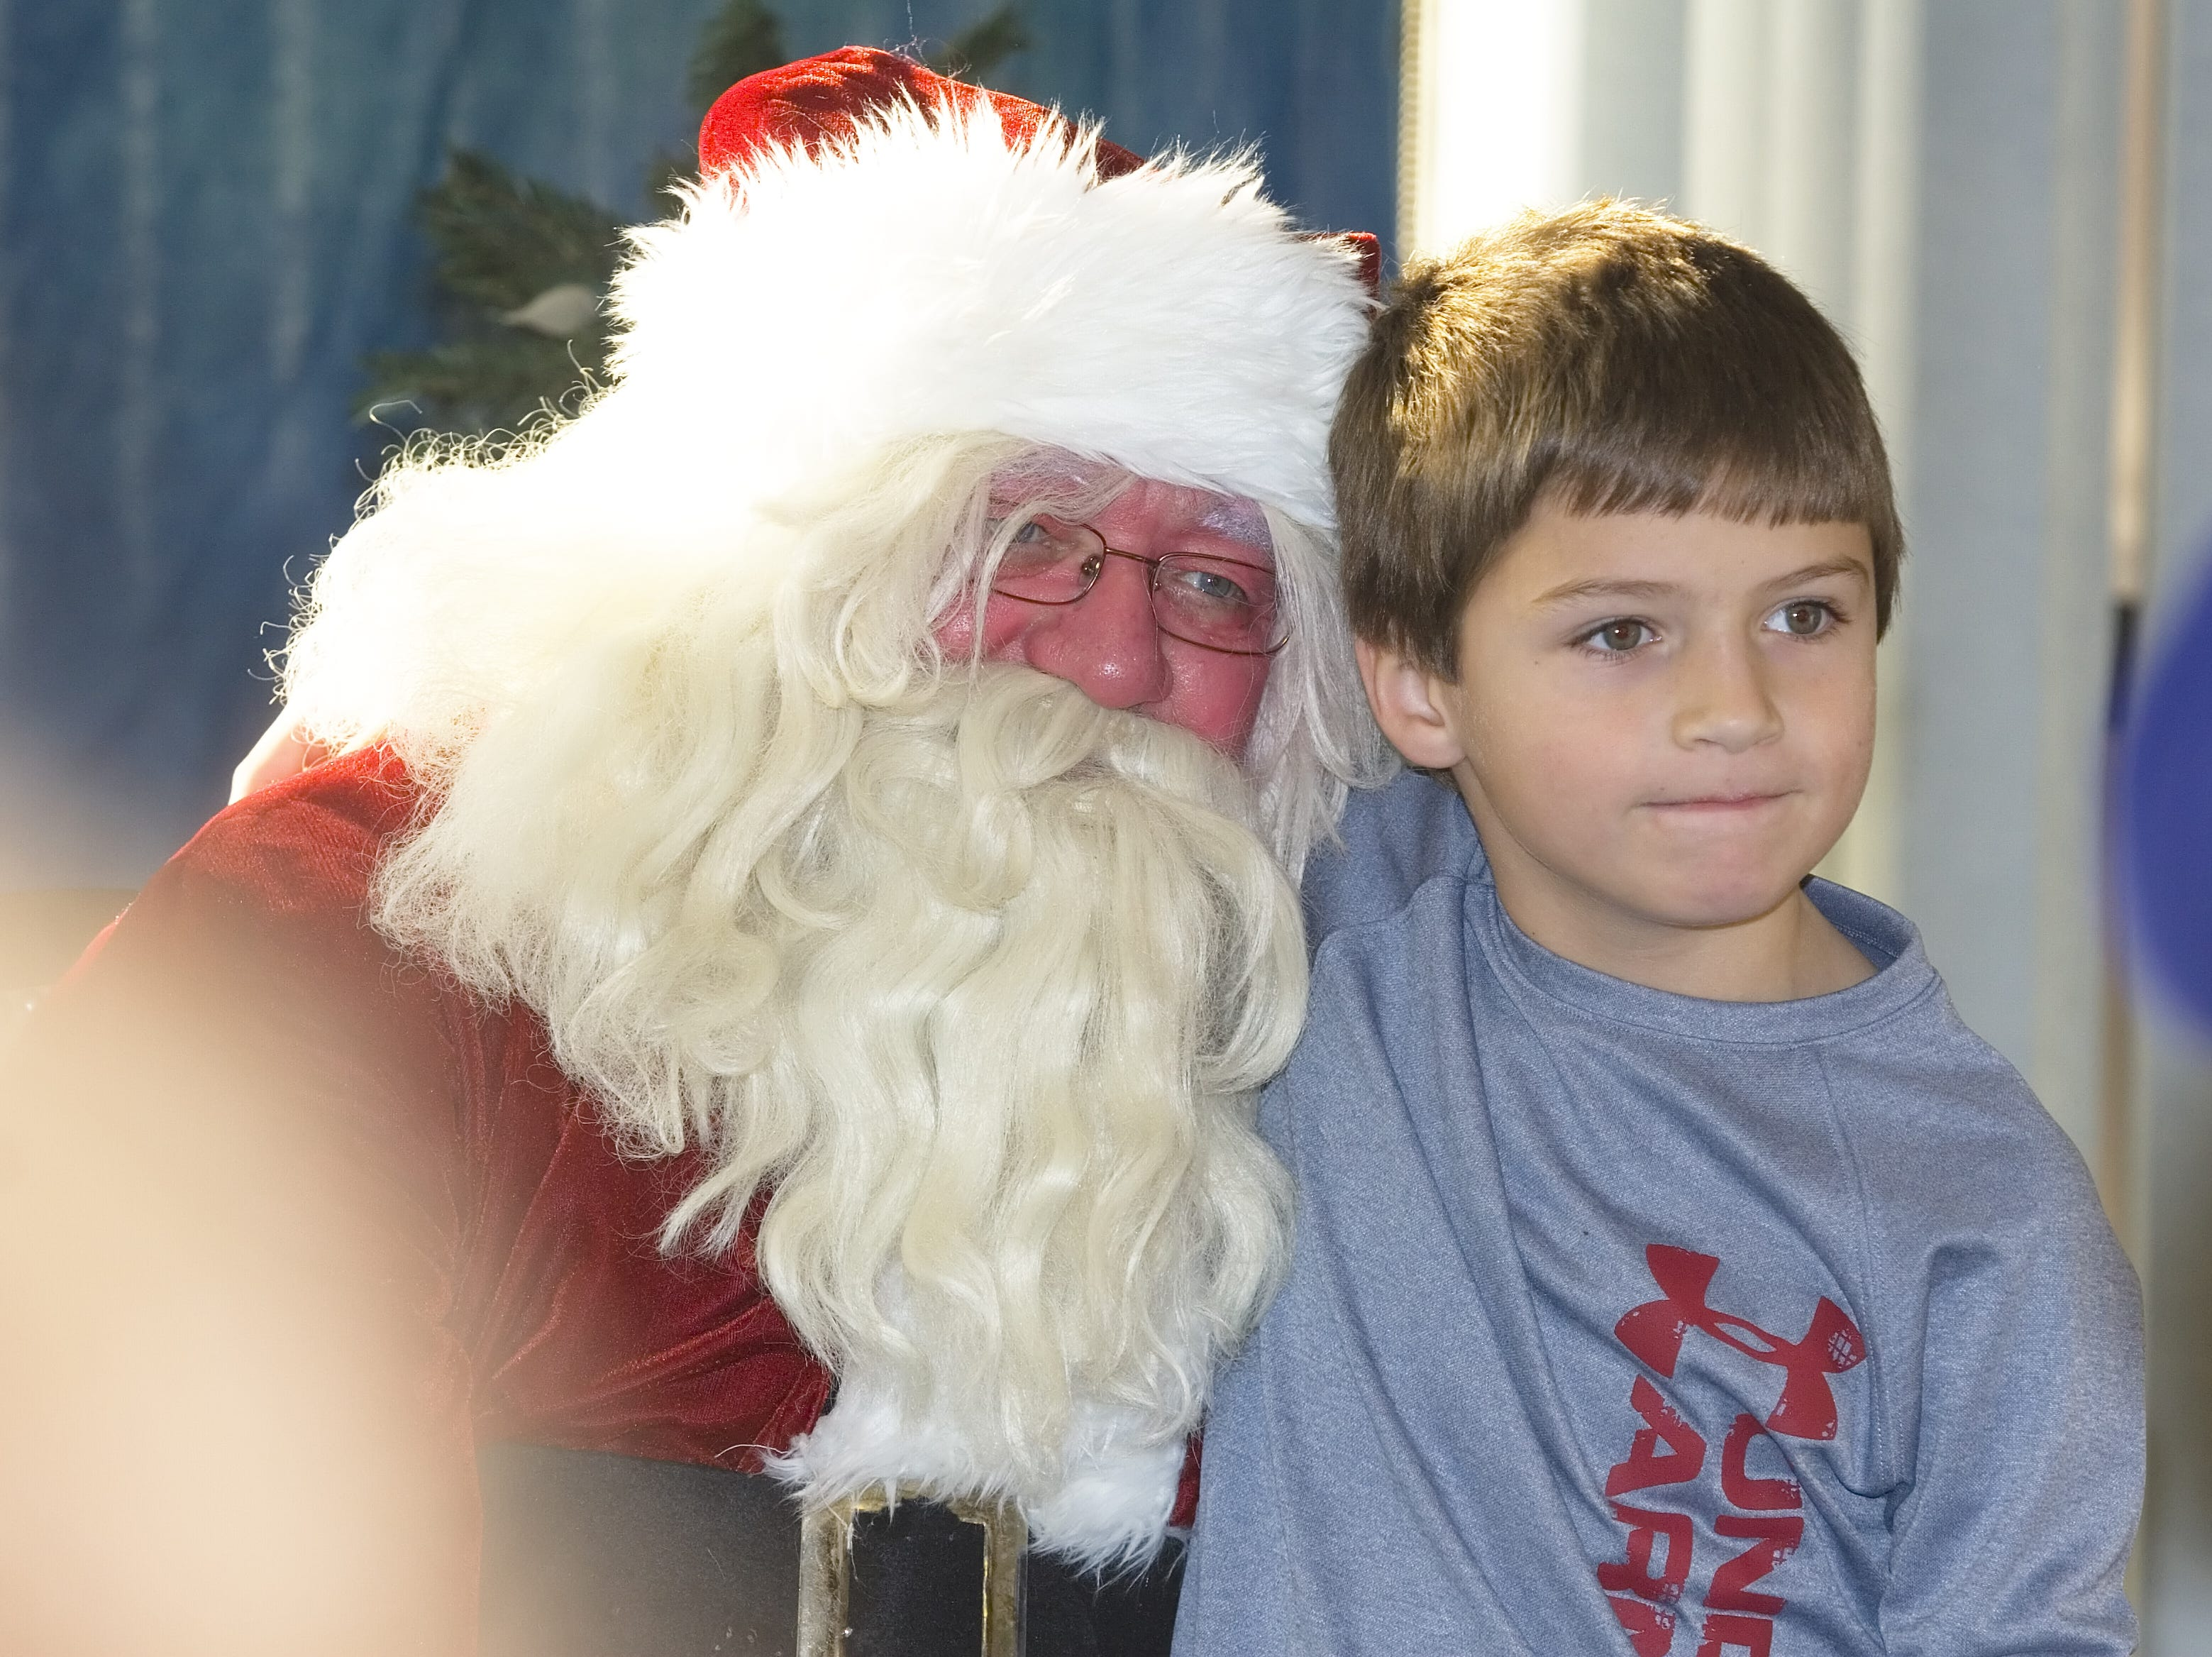 NEED YEAR Ryan Bennett, 8, of Waverly, poses with Santa on Saturday during Breakfast with Santa at Robert Packer Hospital in Sayre.